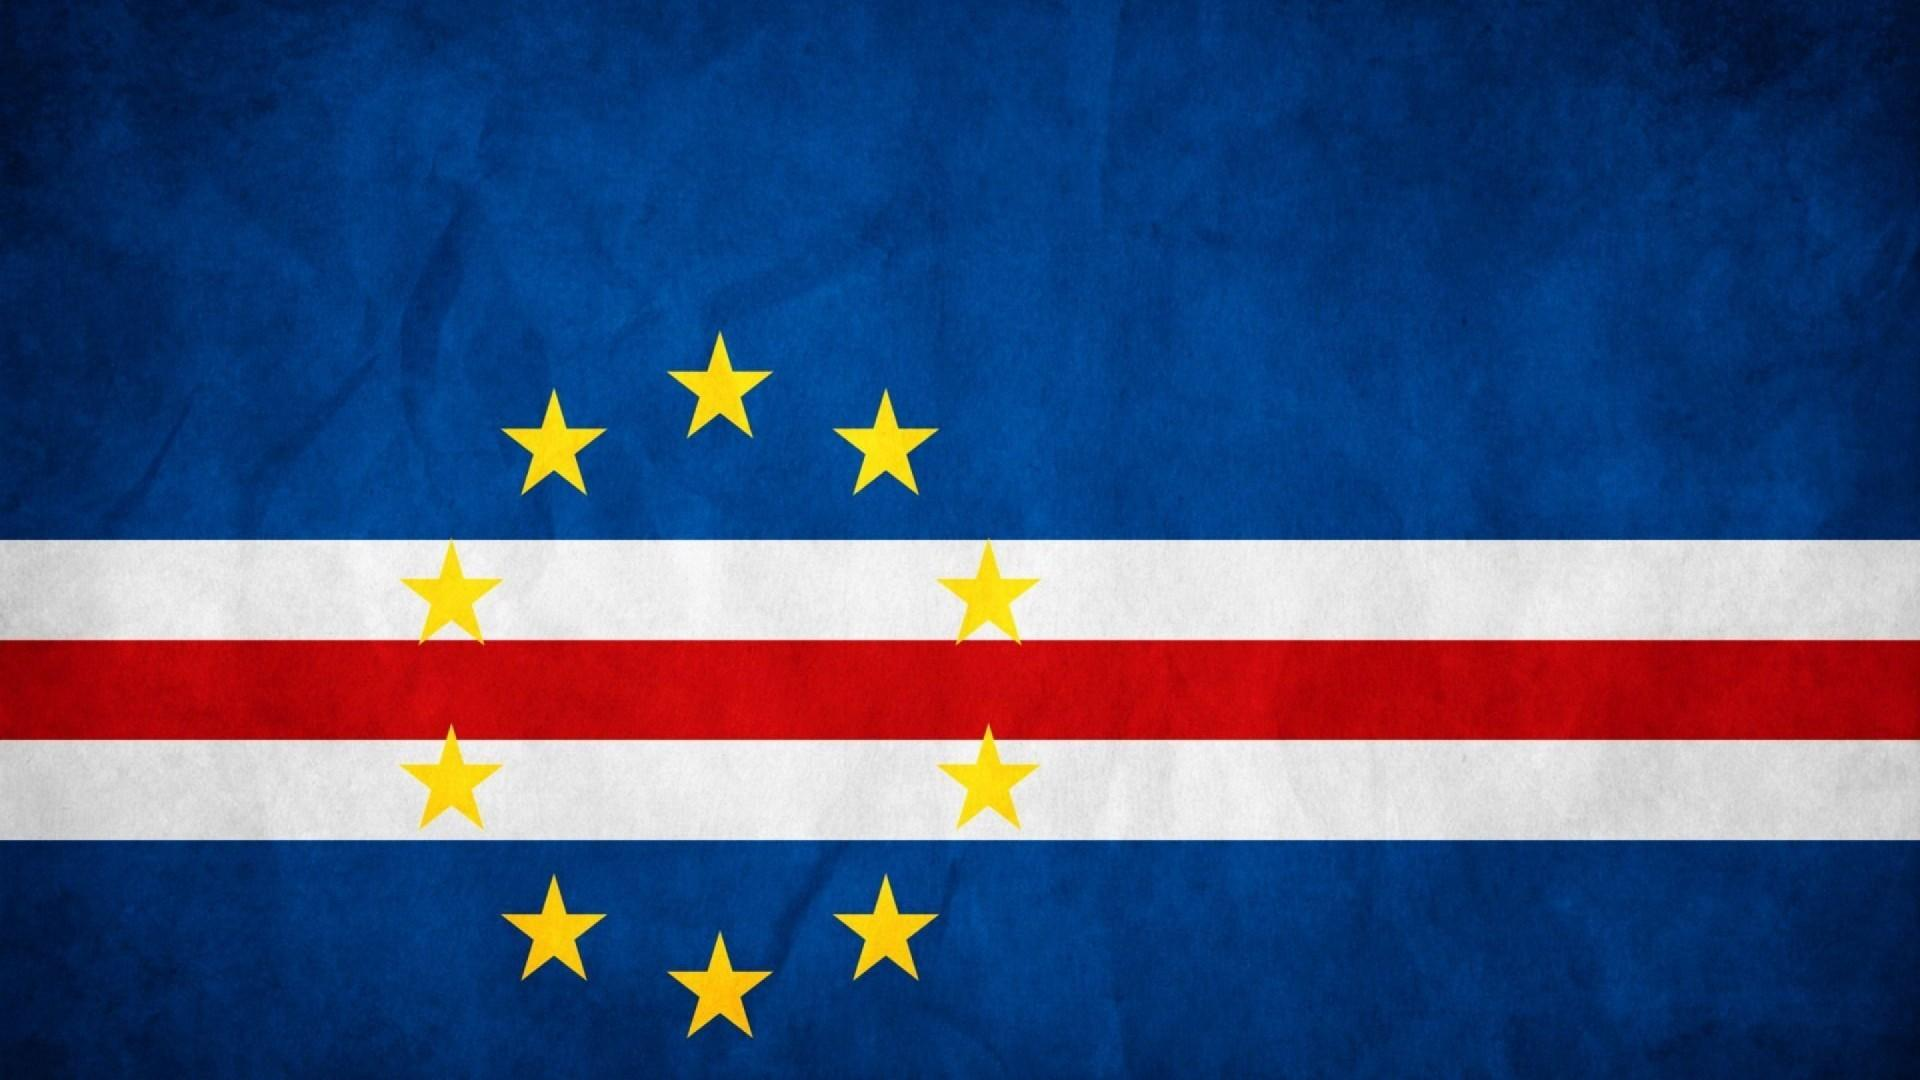 Cape Verde Flag - Wallpaper, High Definition, High Quality, Widescreen